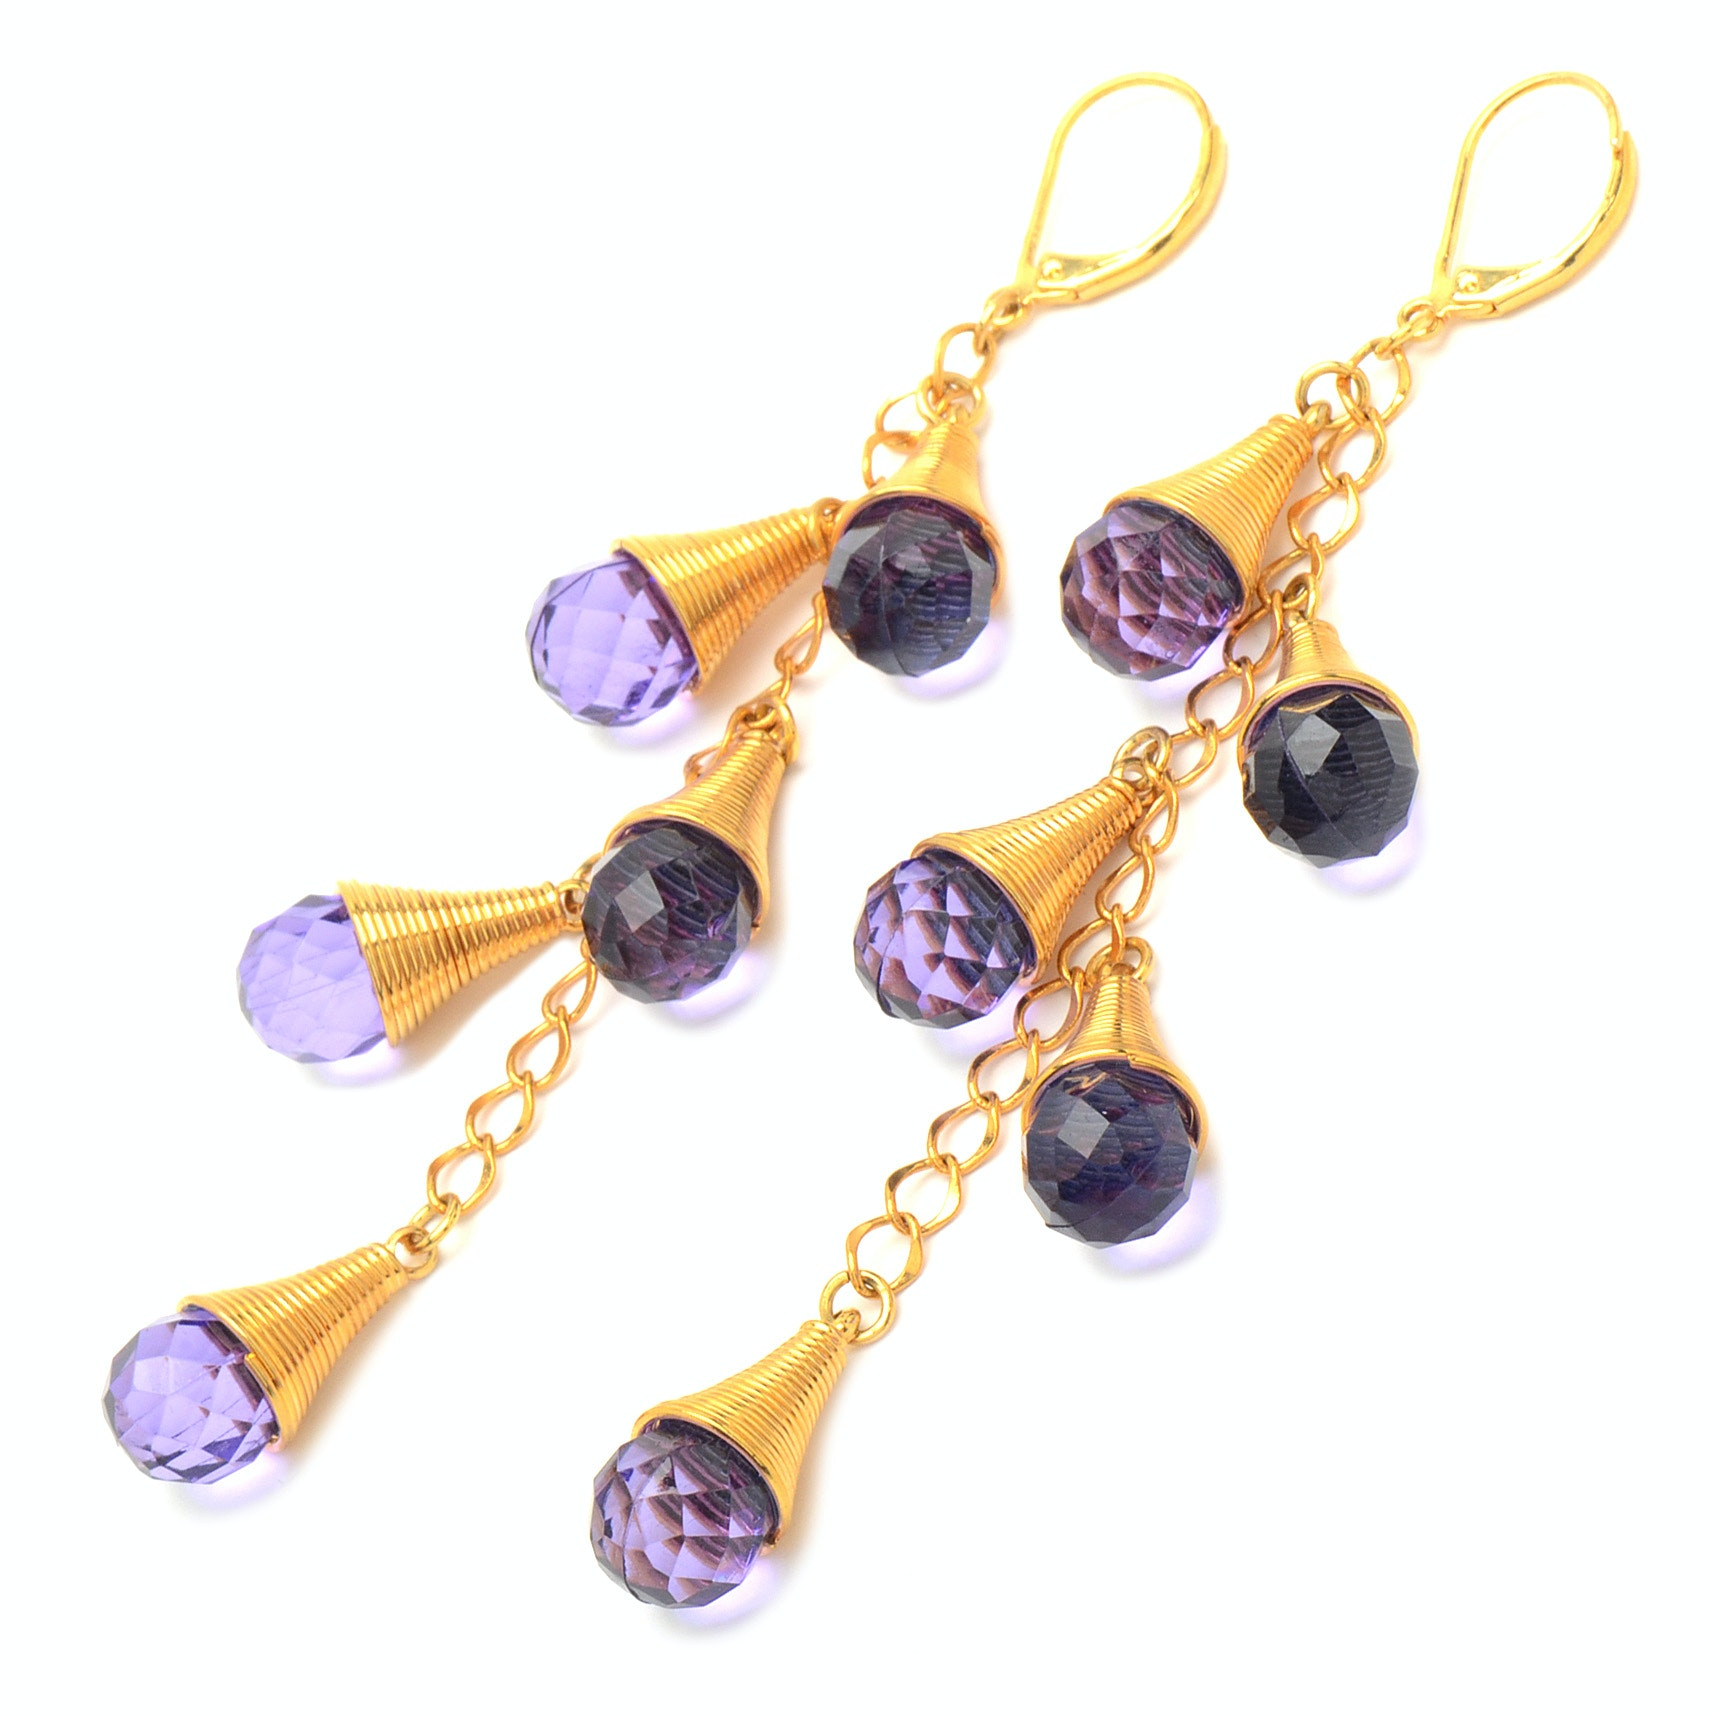 Costume Drop Earrings with Chain, Coils and Faceted Cut Purple Glass Stones